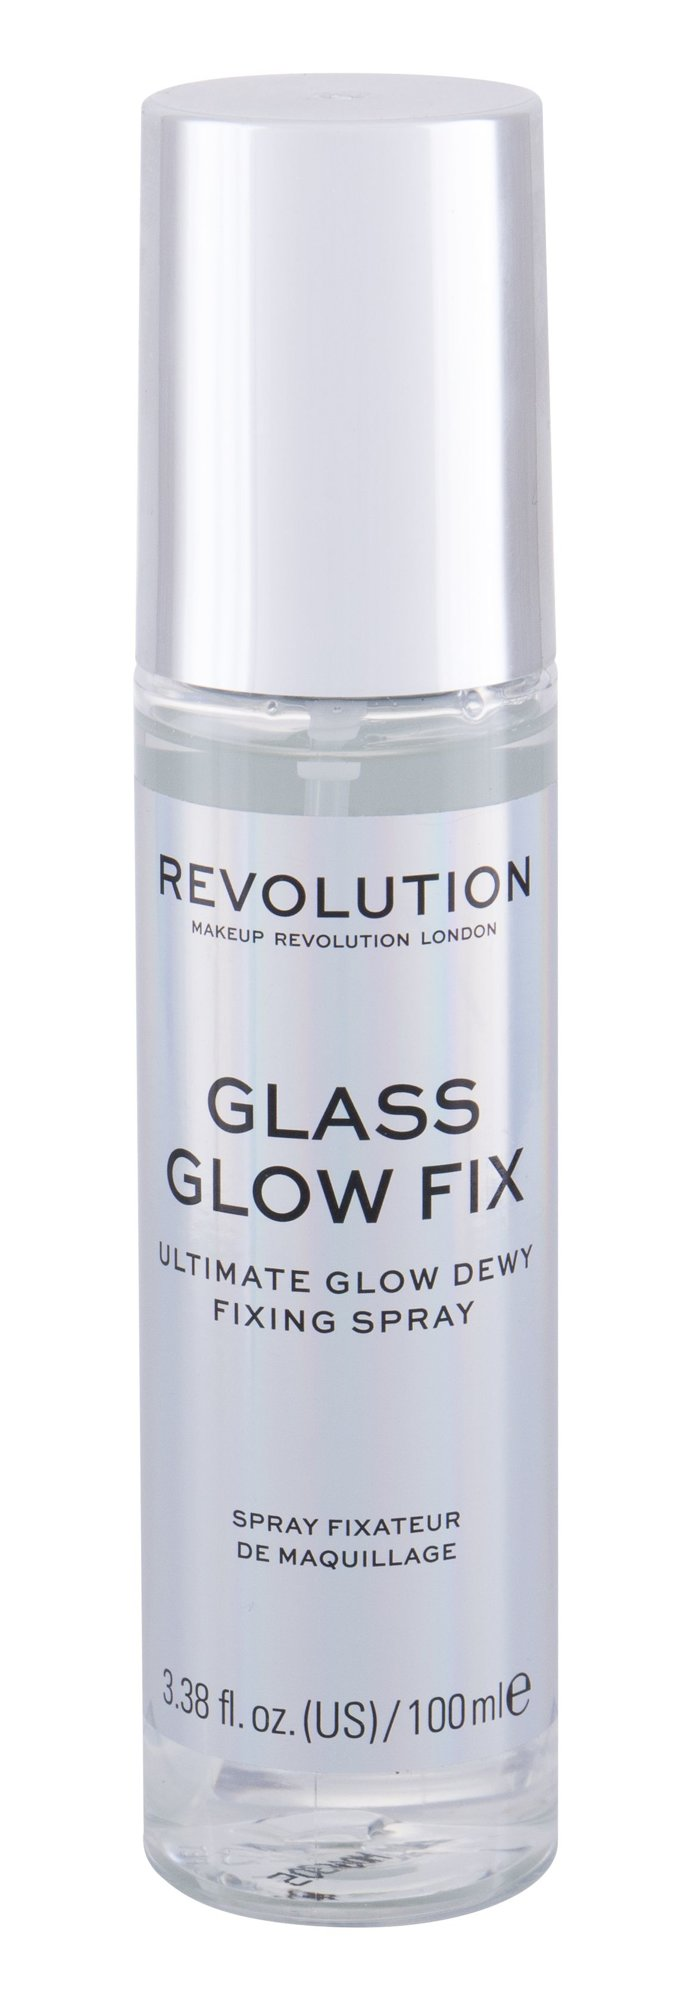 Makeup Revolution London Glass Glow Fix, Fixátor Alapozóu 100ml